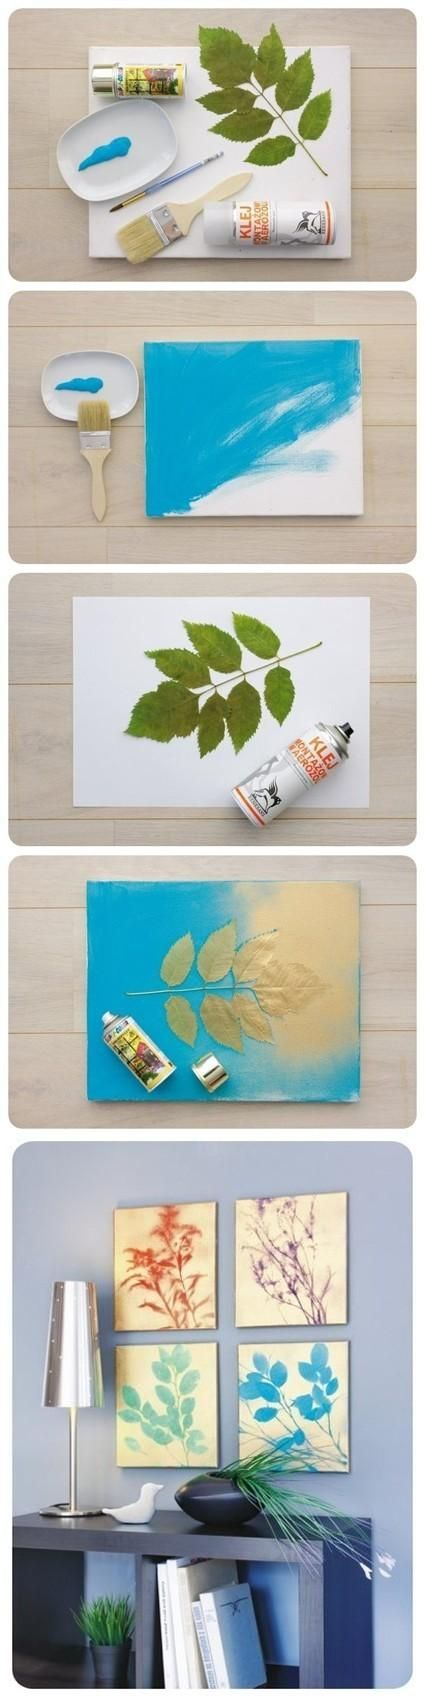 Botanical Art. Any ideas what the white spray paint is?